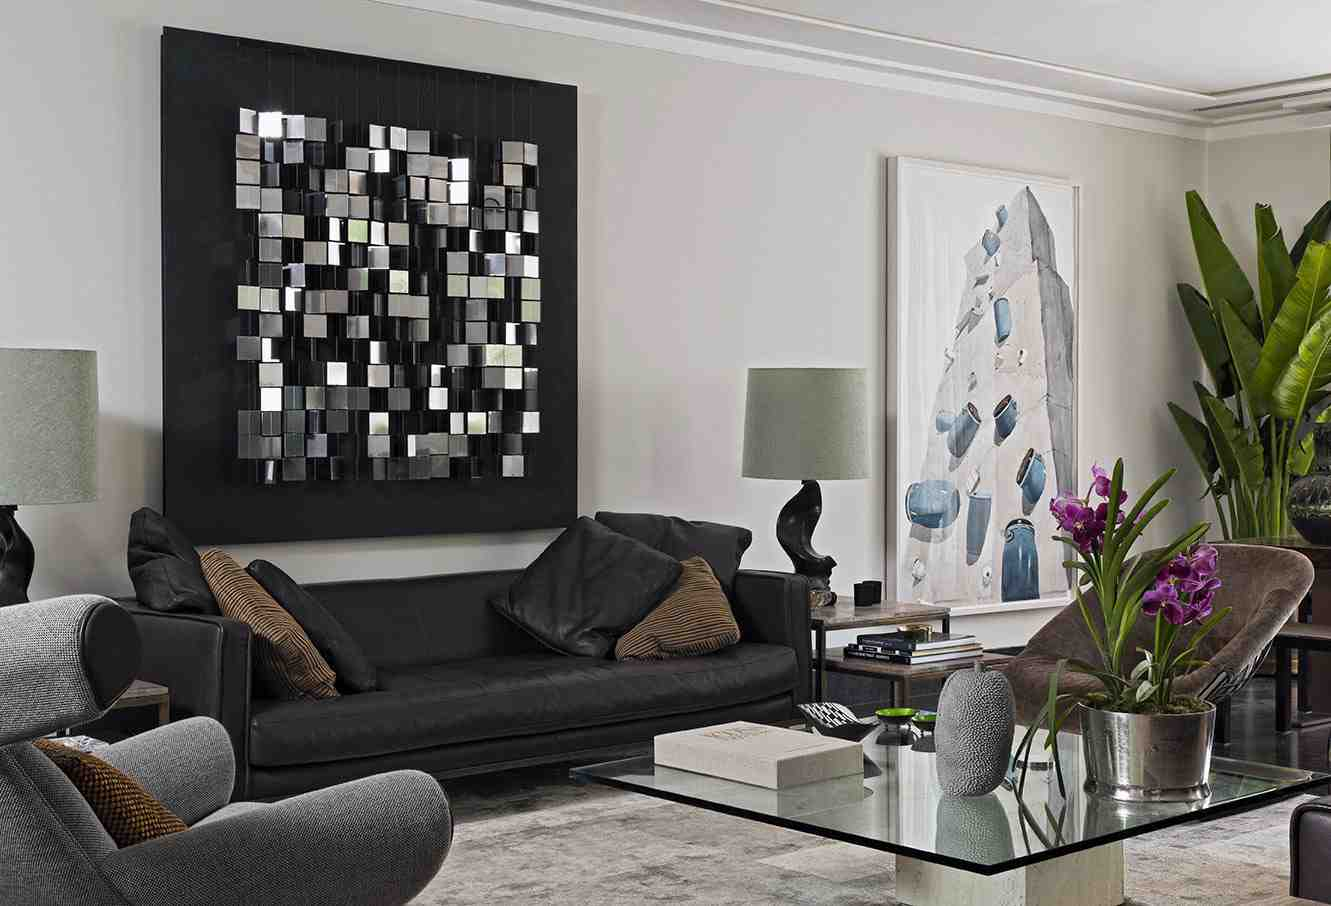 Living Room Wall Decoration Items : Living room wall decor options ideasdecor ideas